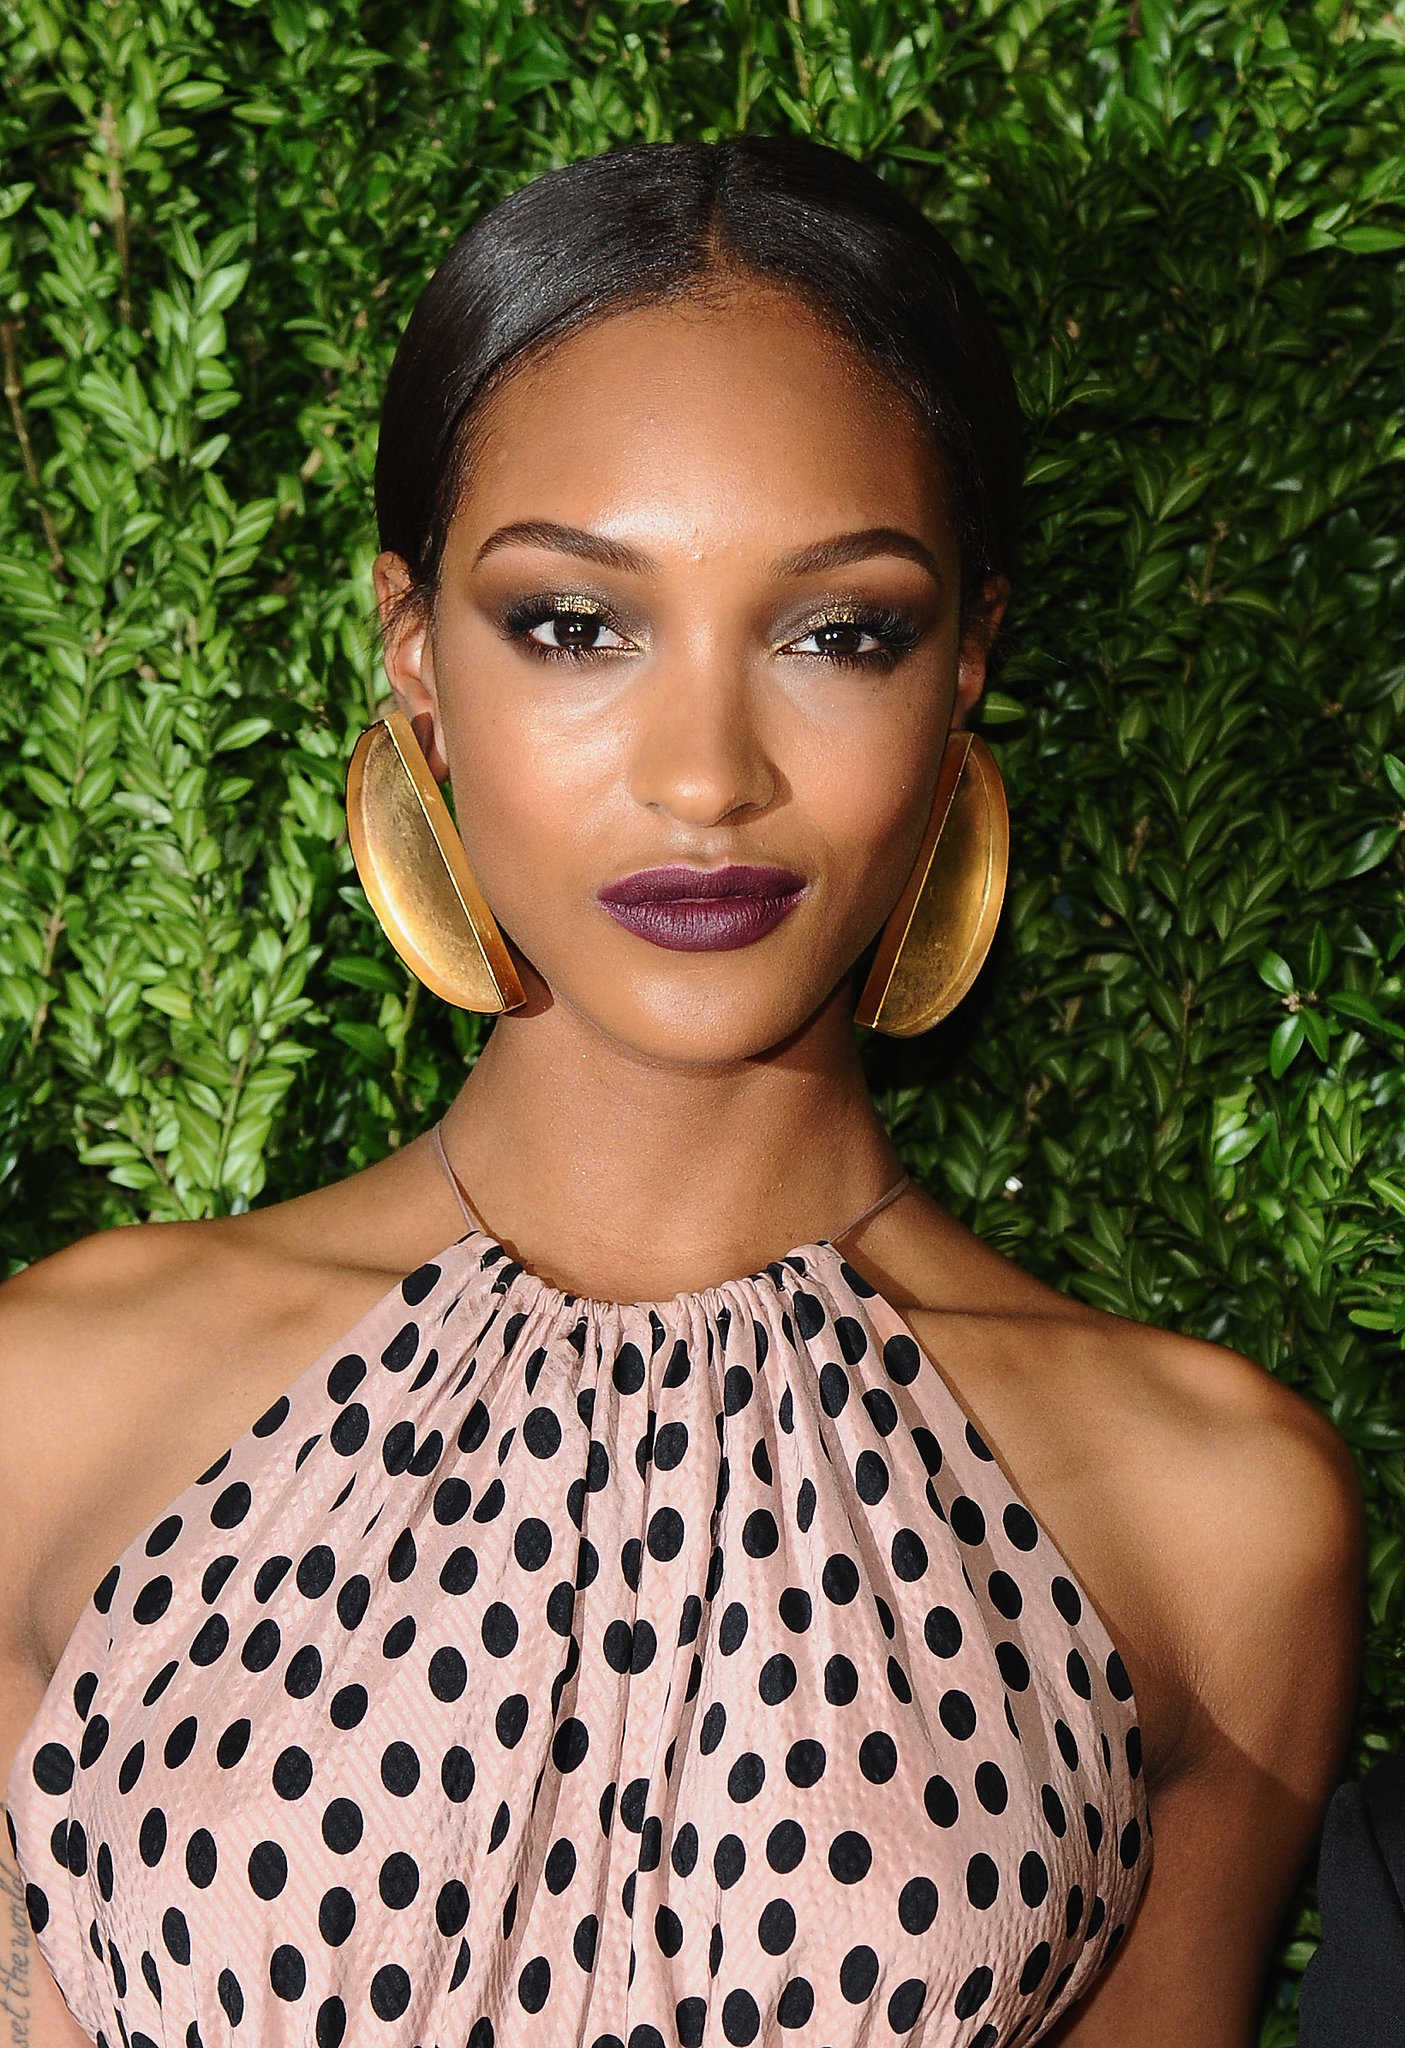 We can't get enough of Jourdan Dunn's wine-colored lipstick, which looked gorgeous with her statement earrings.